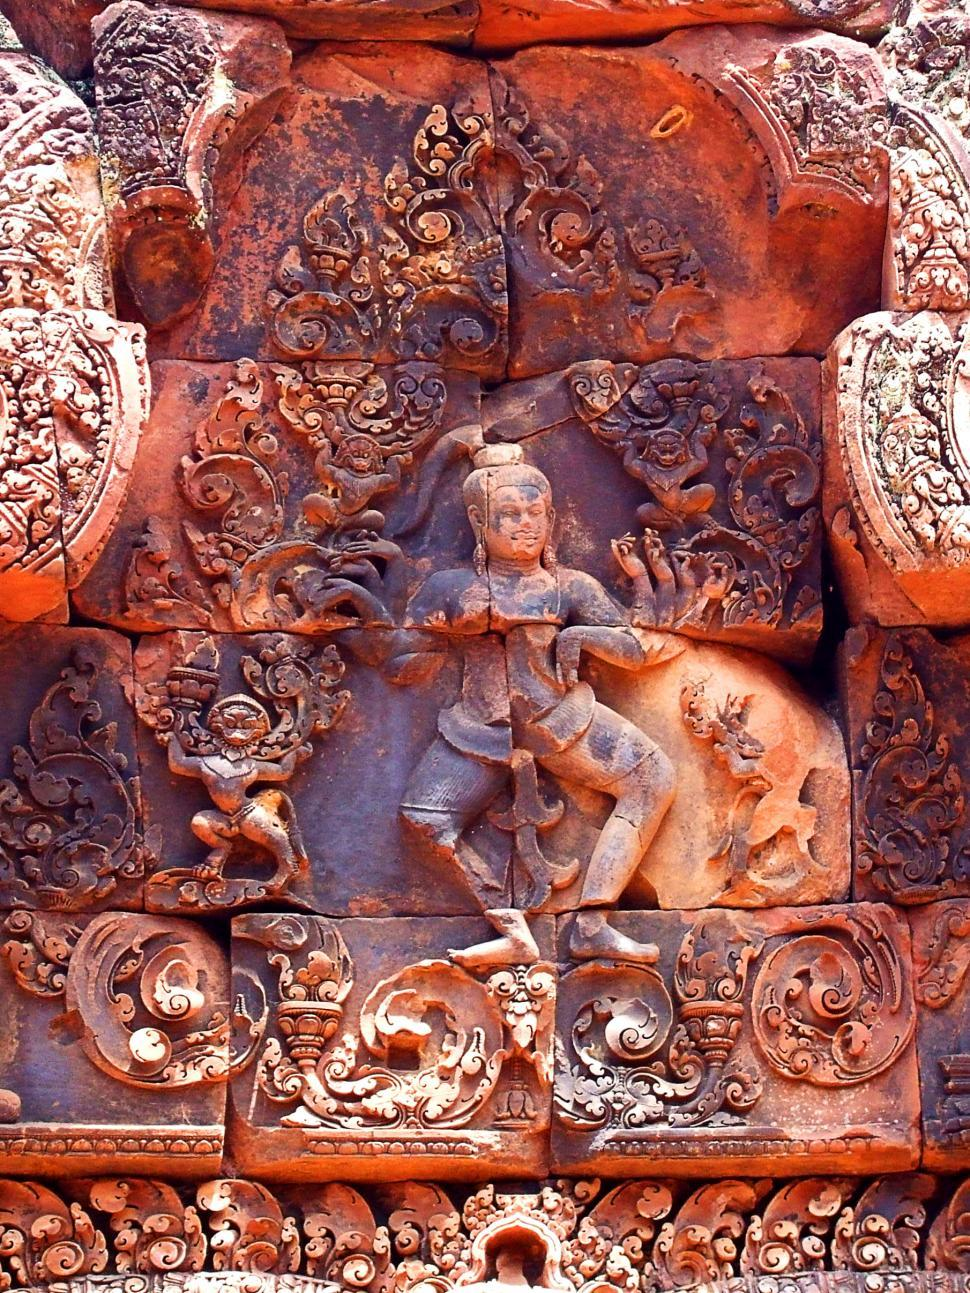 Download Free Stock Photo of Pink stone carvings of Banteay Srei - Siemreap - Cambodia